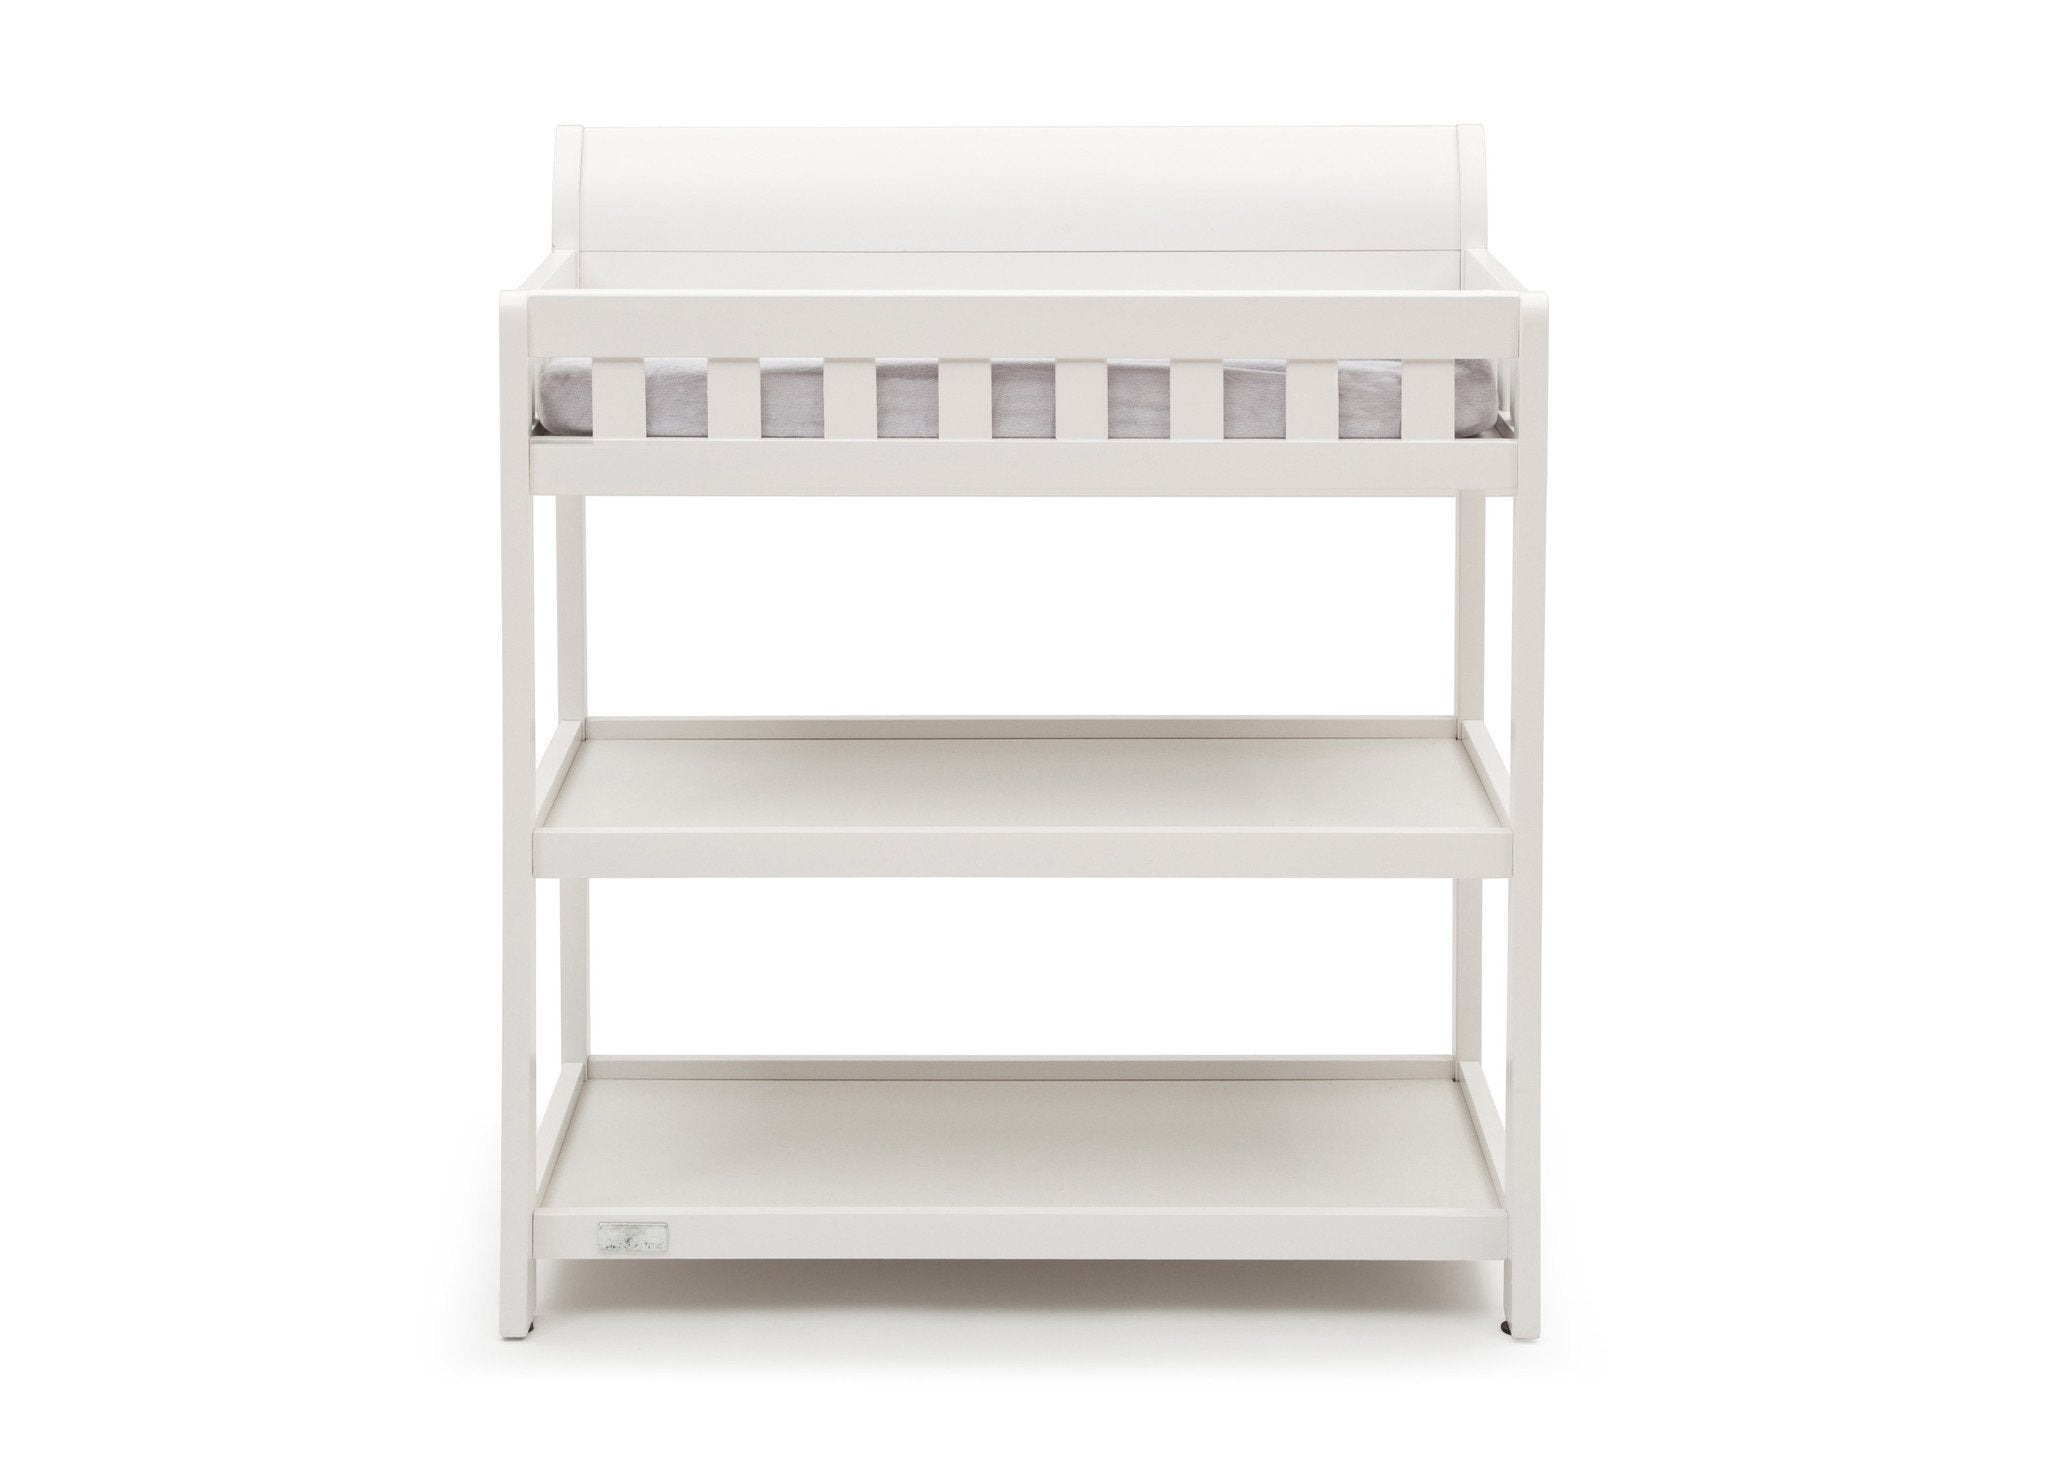 Simmons Kids White Ambiance (108) Madisson Changing Table Front View a3a